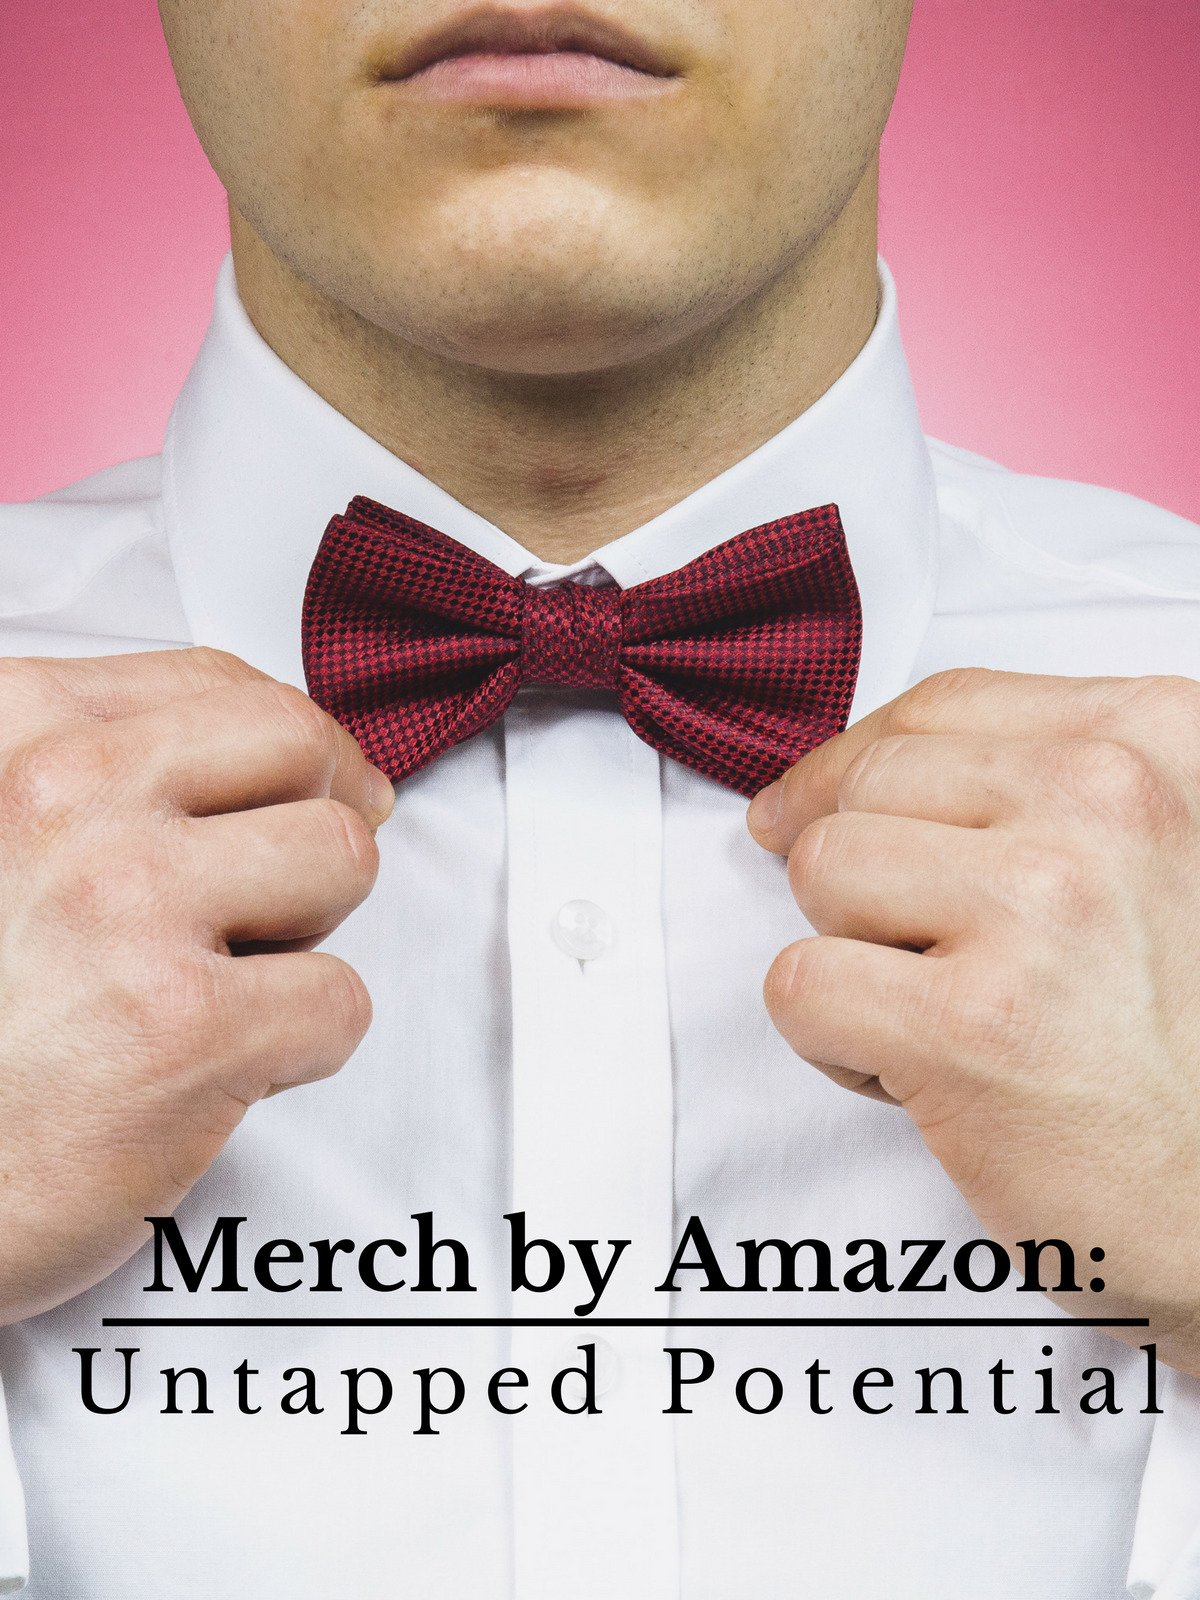 Merch by Amazon: Untapped Potential